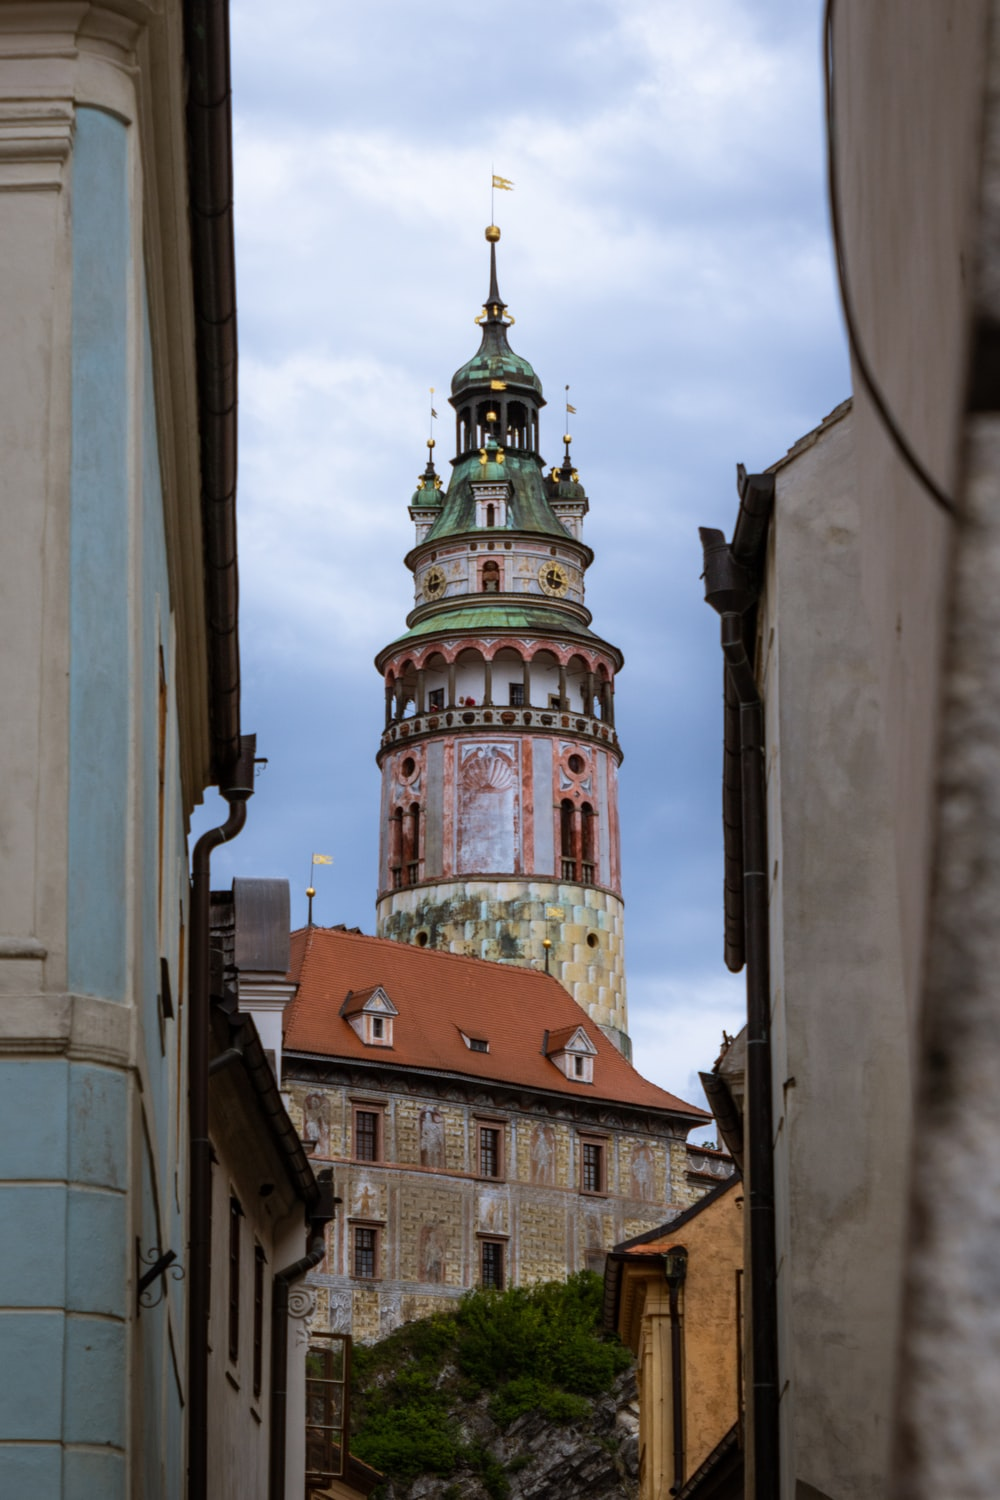 pink and white tower at daytime